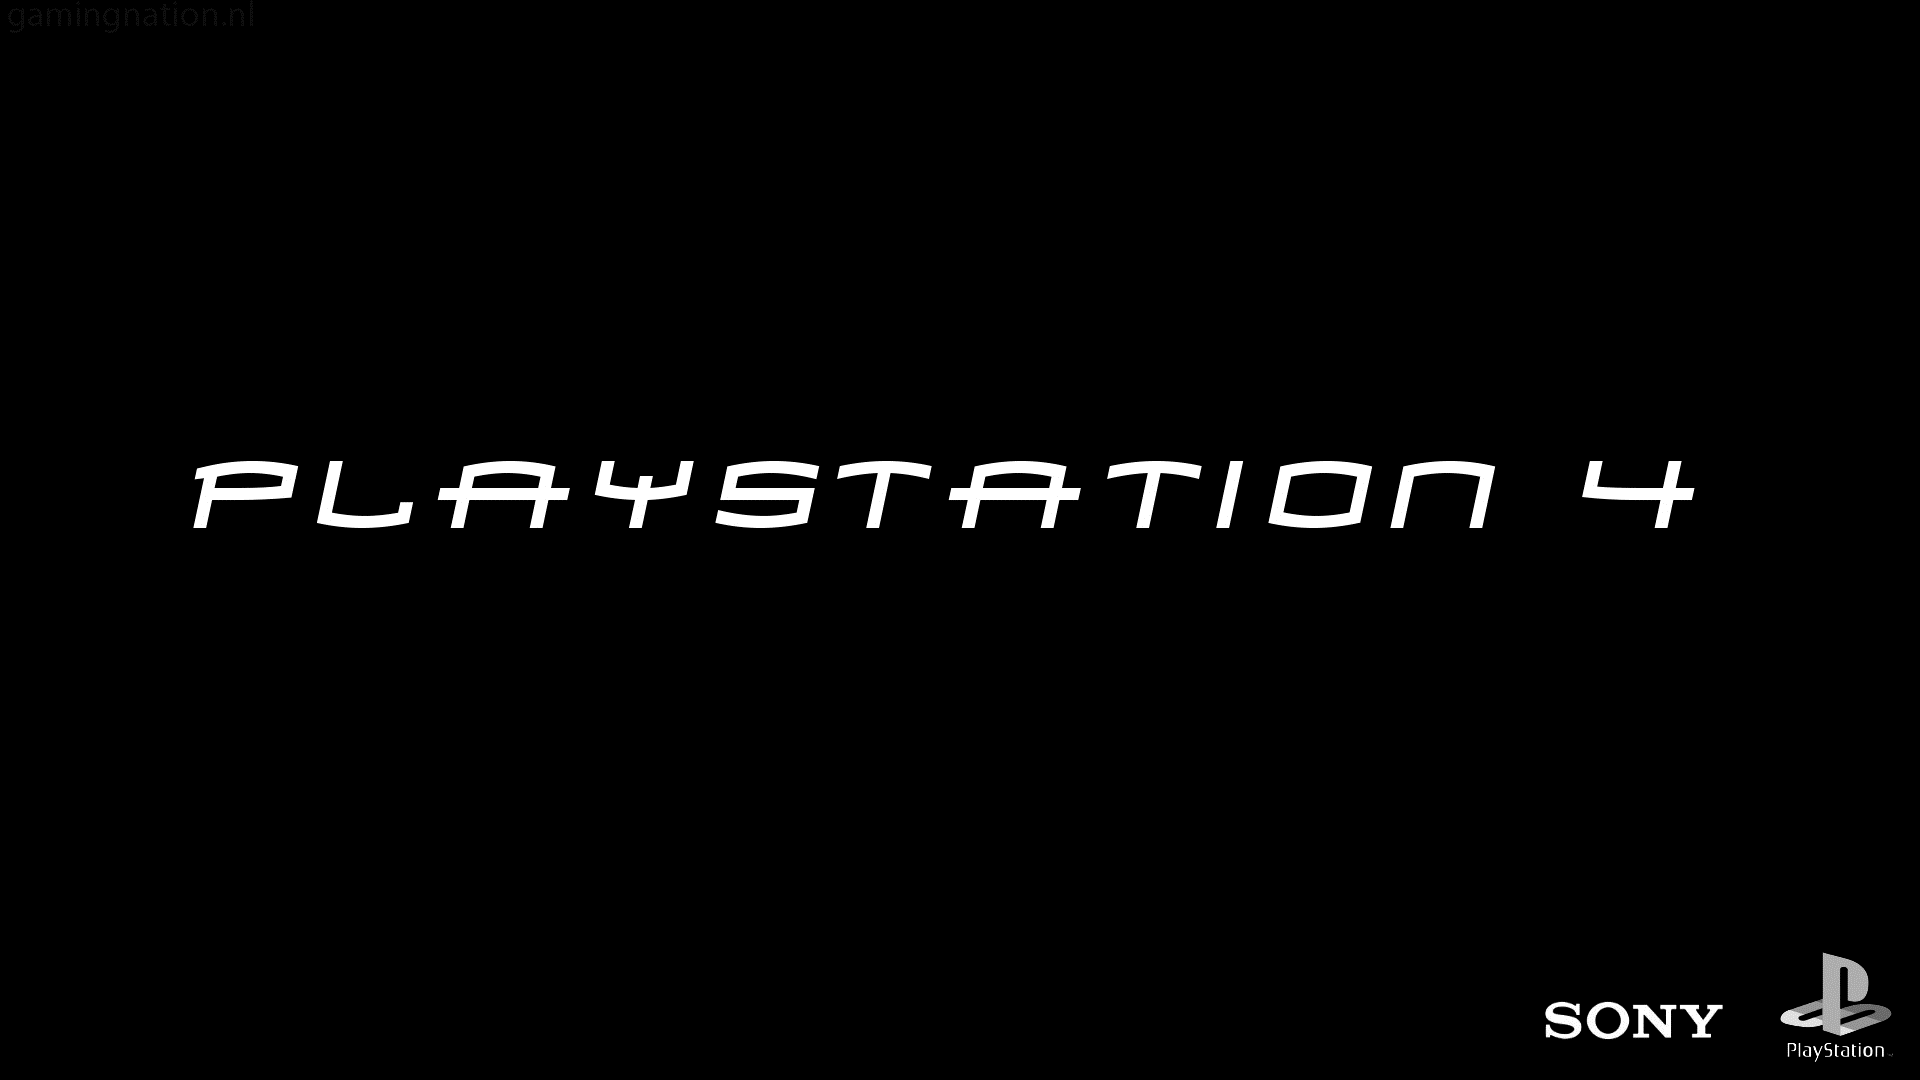 Editorial Playstation 4 Welcome To A Future With Endless Possibilities Playstation Playstation 4 Video Game News